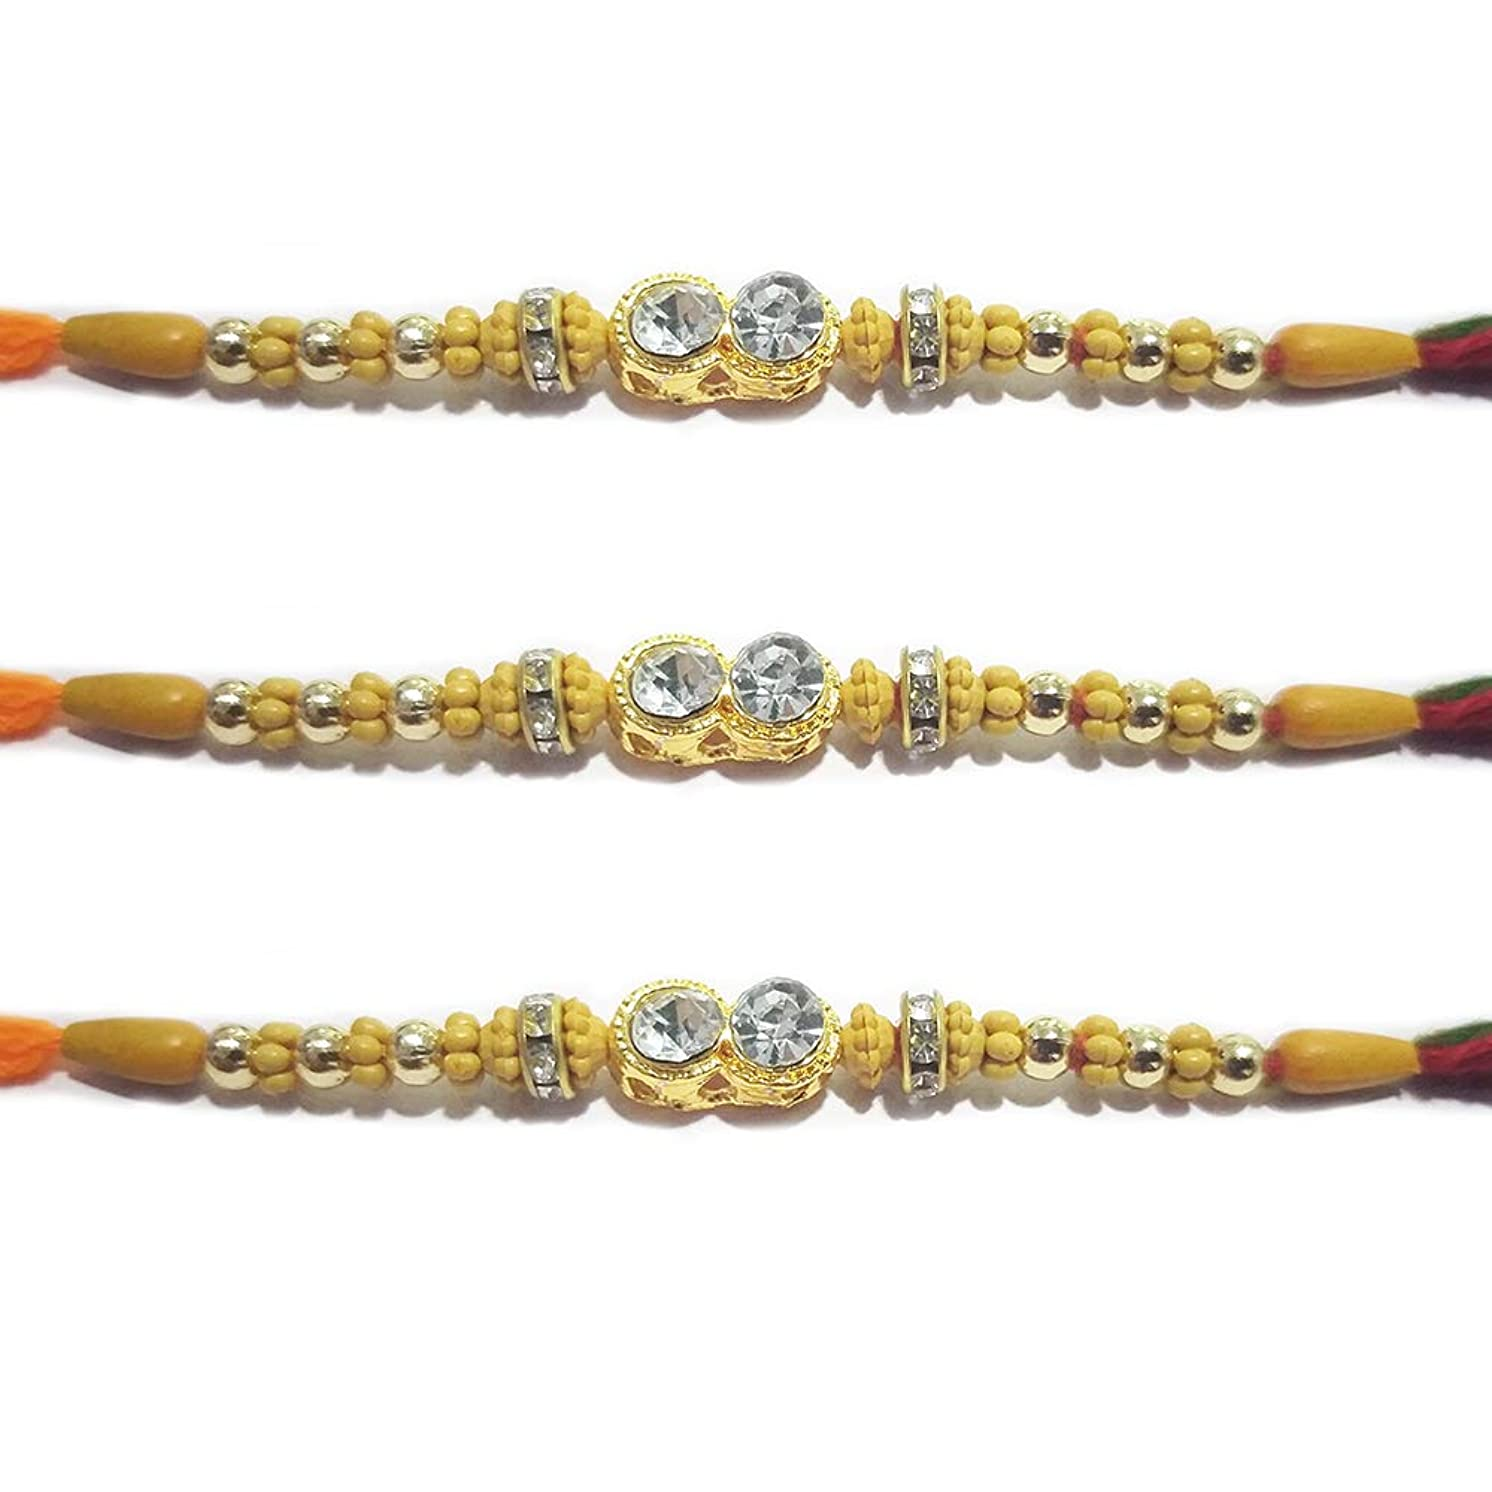 WhopperIndia Set of 3 Center Two Big Diampond and Small Beads Traditional Rakshabandhan Rakhee Bracelet Color and Design May Vary